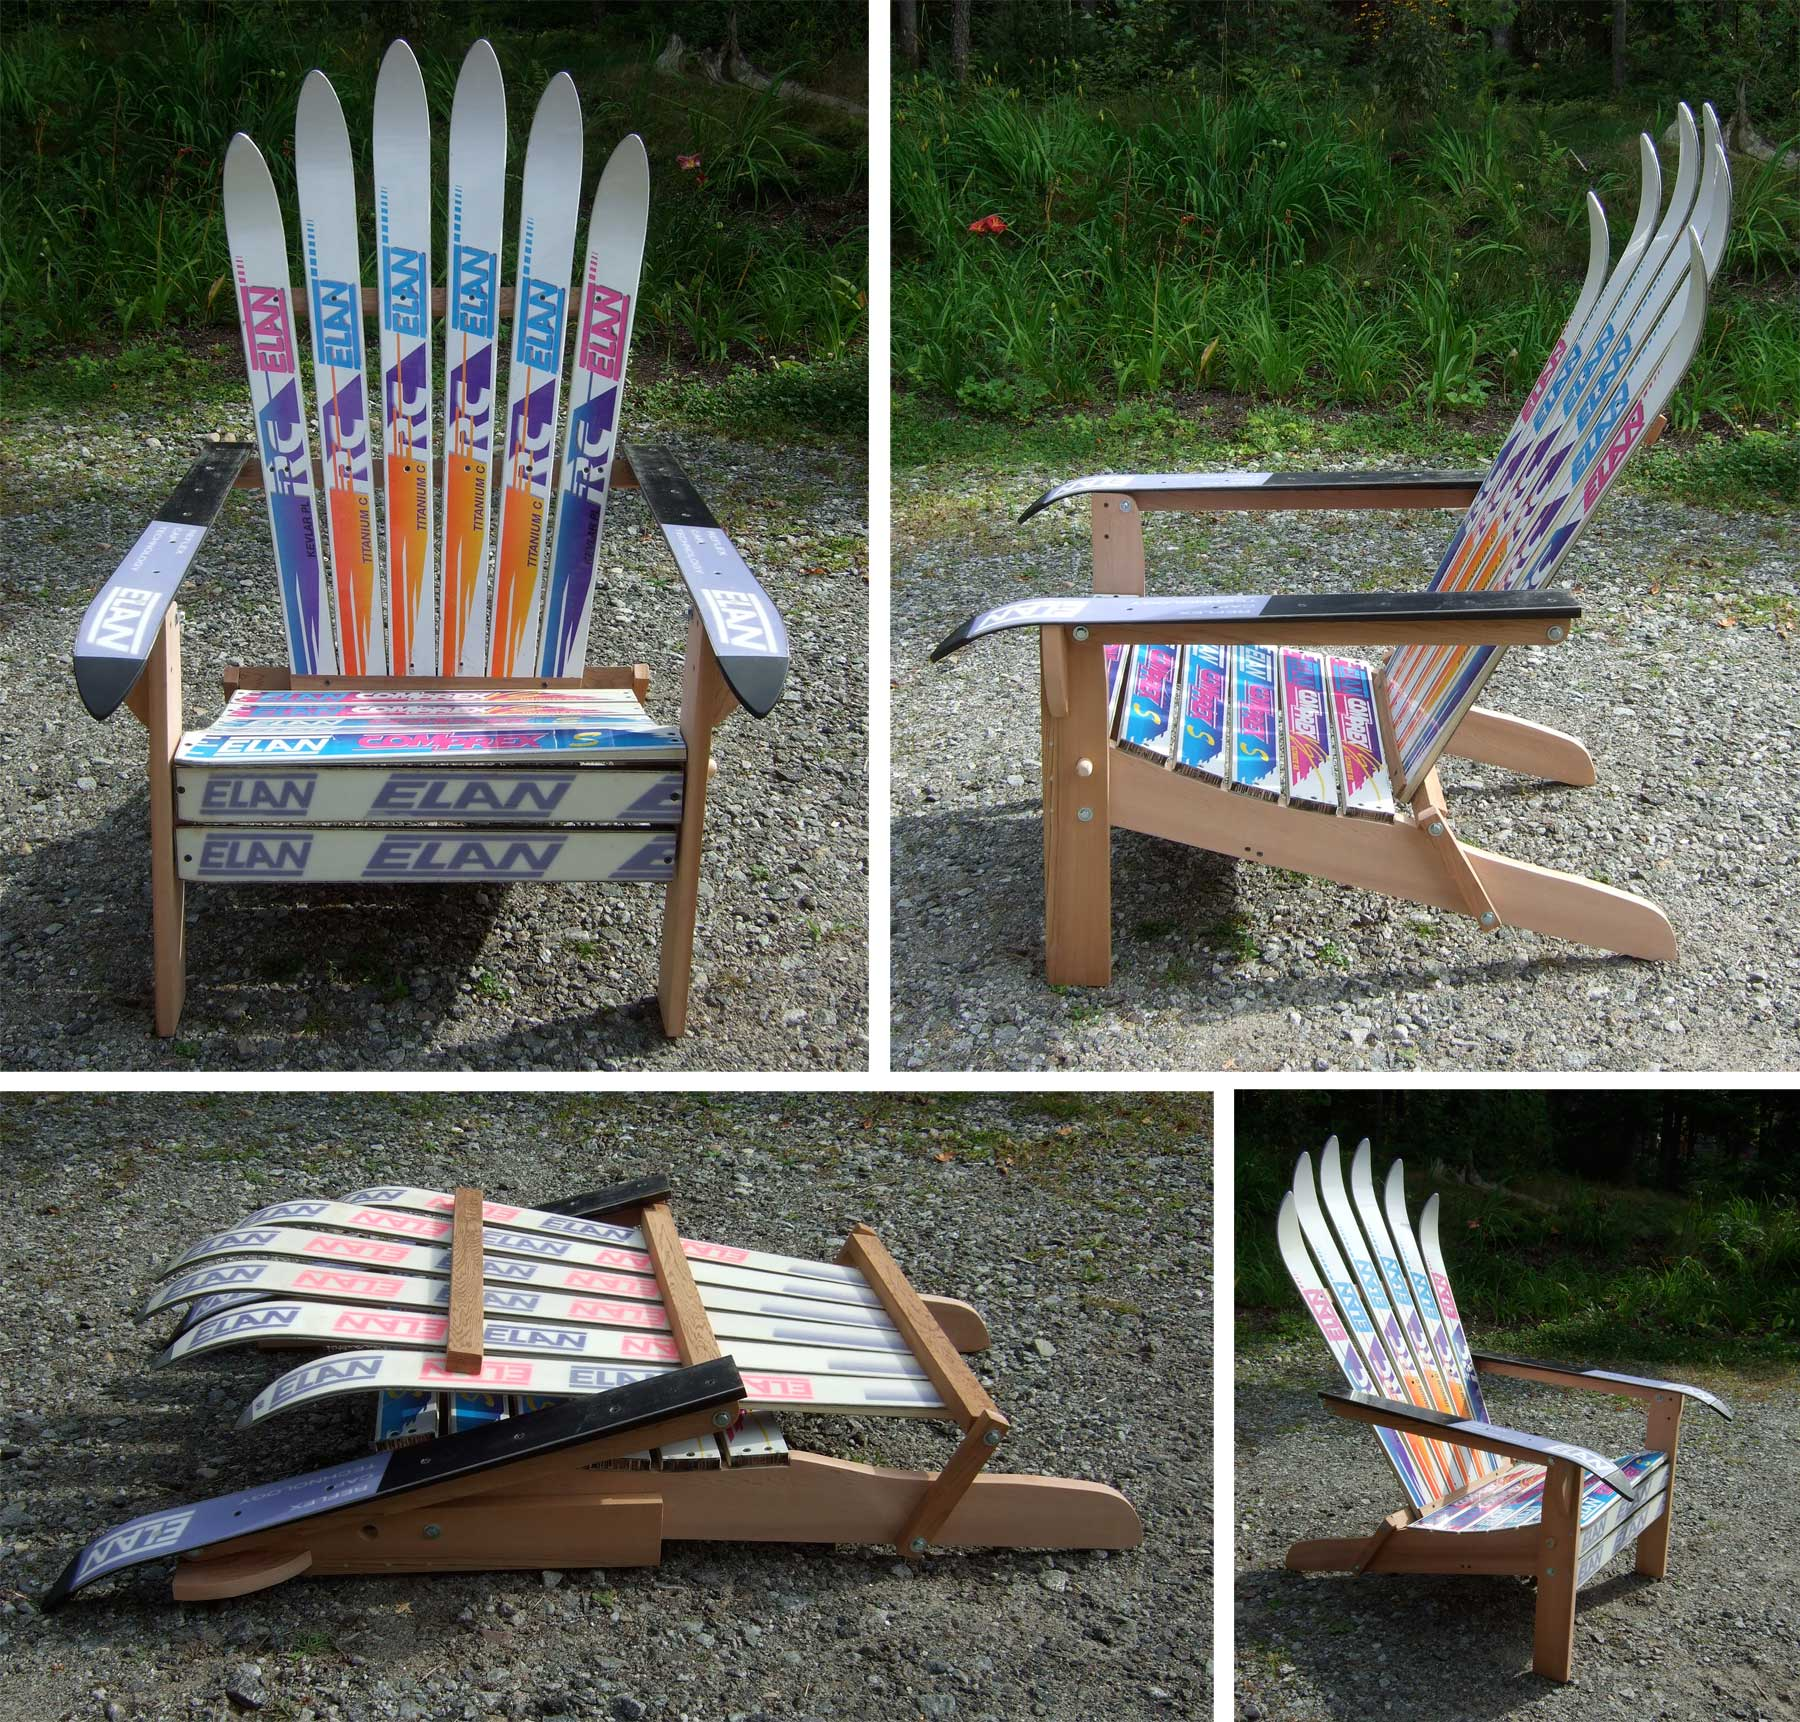 adirondack chair blueprints ergonomic calgary wooden how to make chairs from skis pdf plans